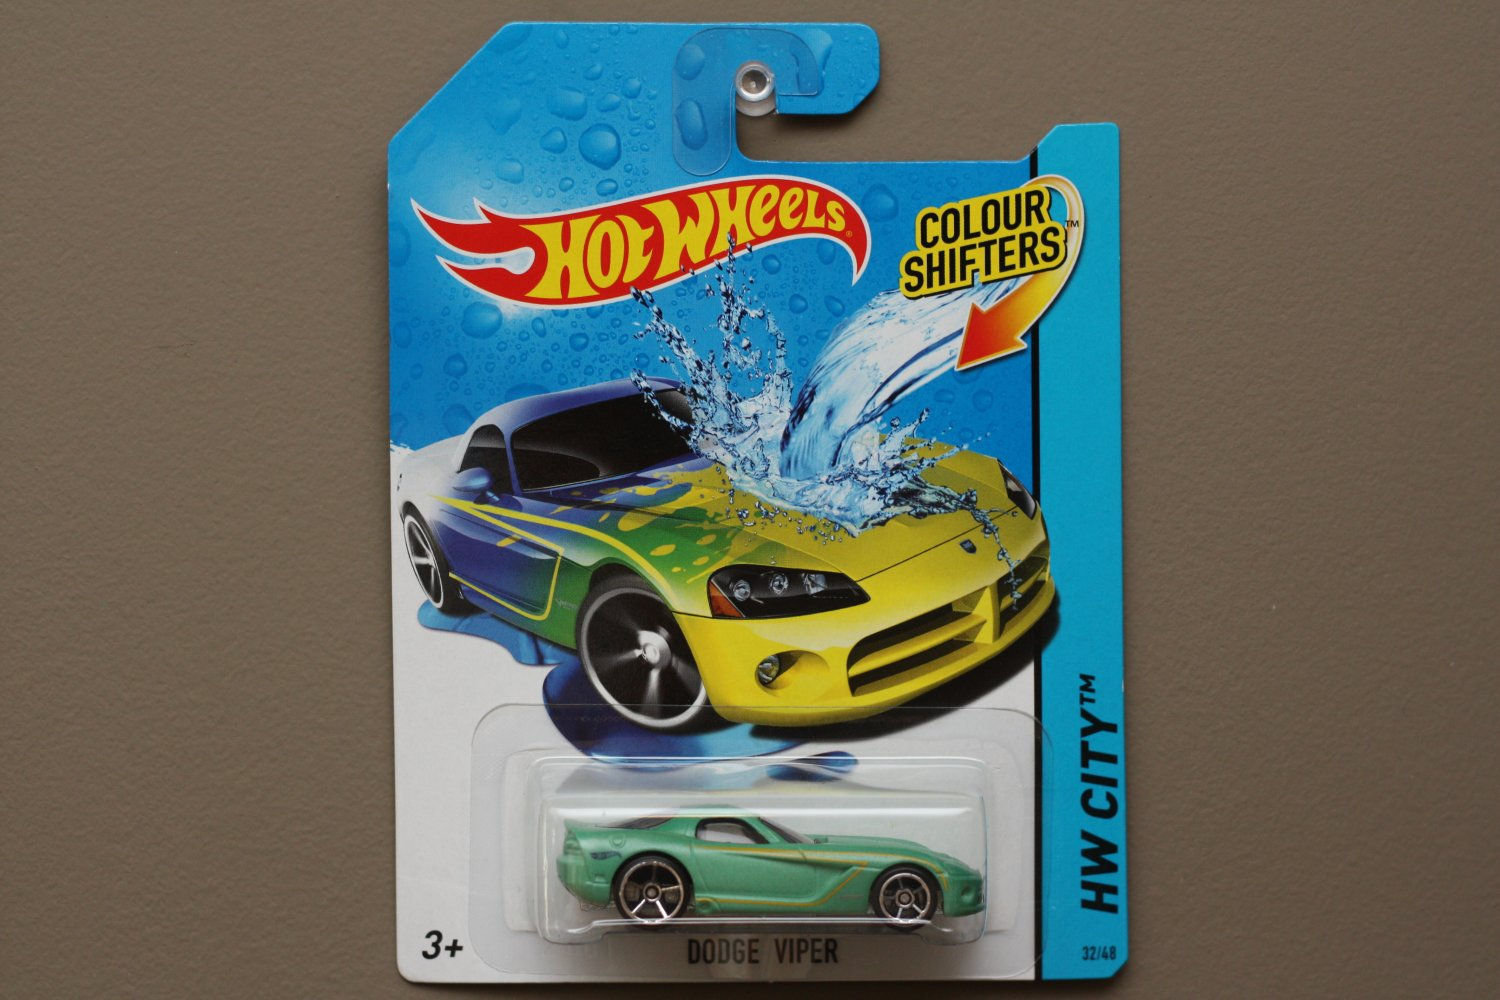 hot wheels 2014 color shifters dodge viper teal to yellow. Black Bedroom Furniture Sets. Home Design Ideas